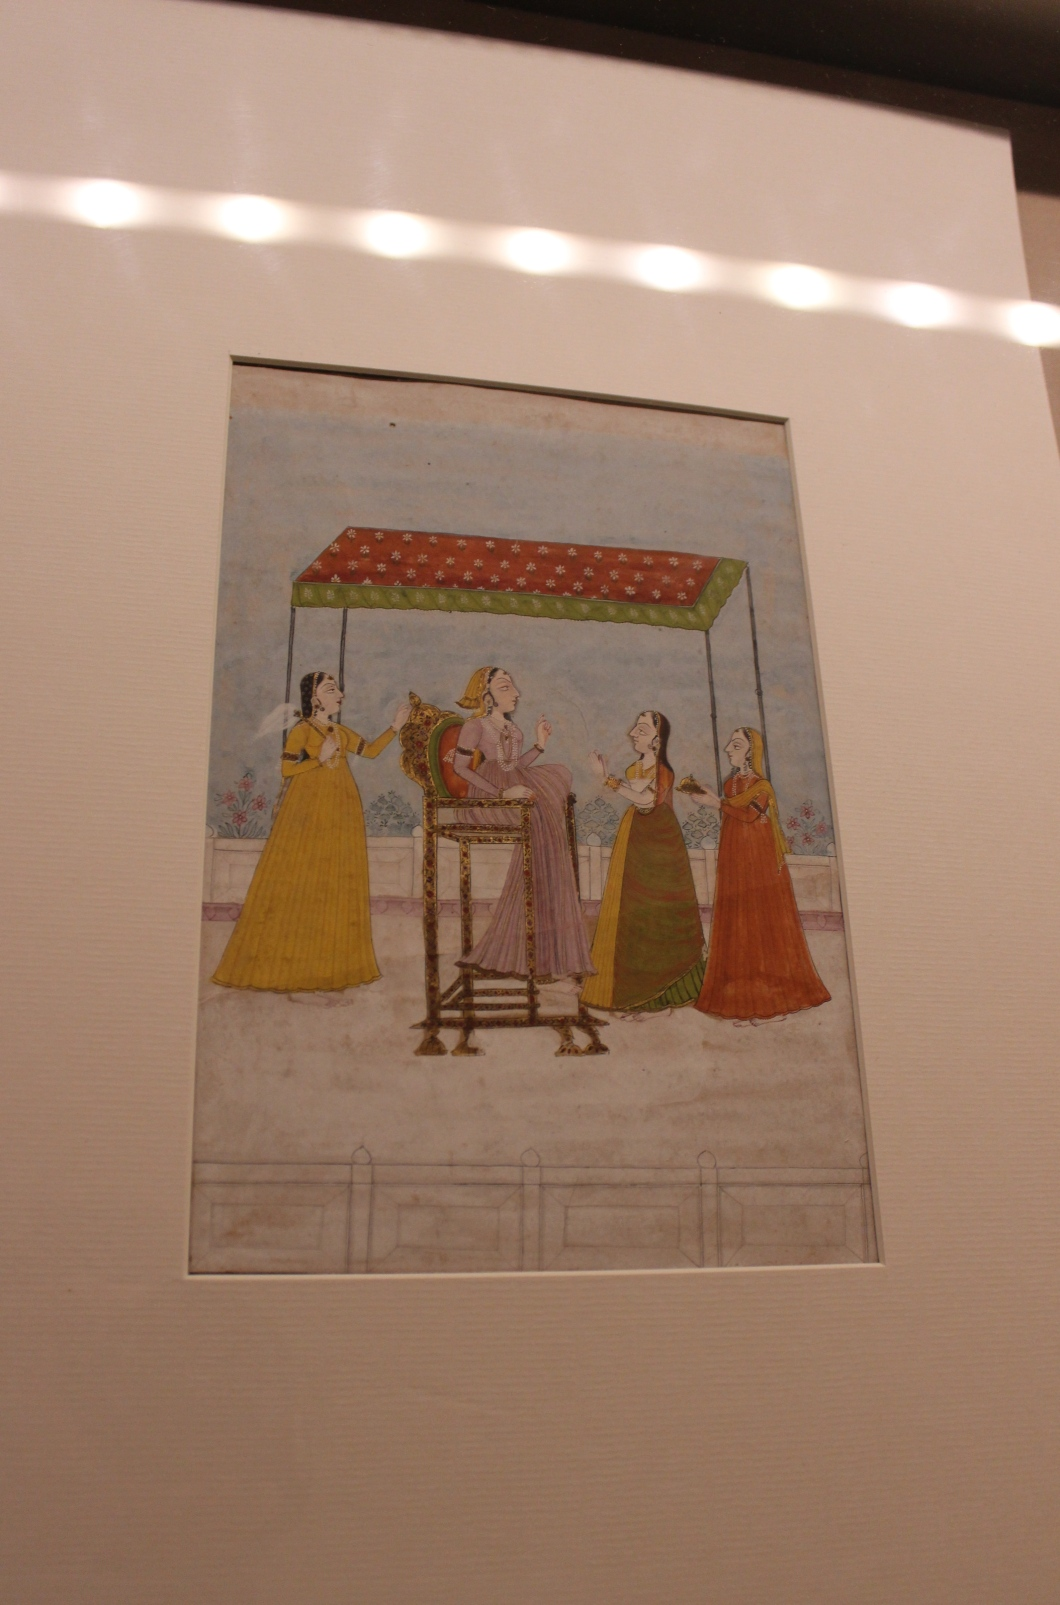 A Lady with Attendants: Rajasthani, Bikaner, Late18th century CE, Sir Ratan Tata Art Collection (Indian Miniature Painting - Photograph in mirandavoice.com)